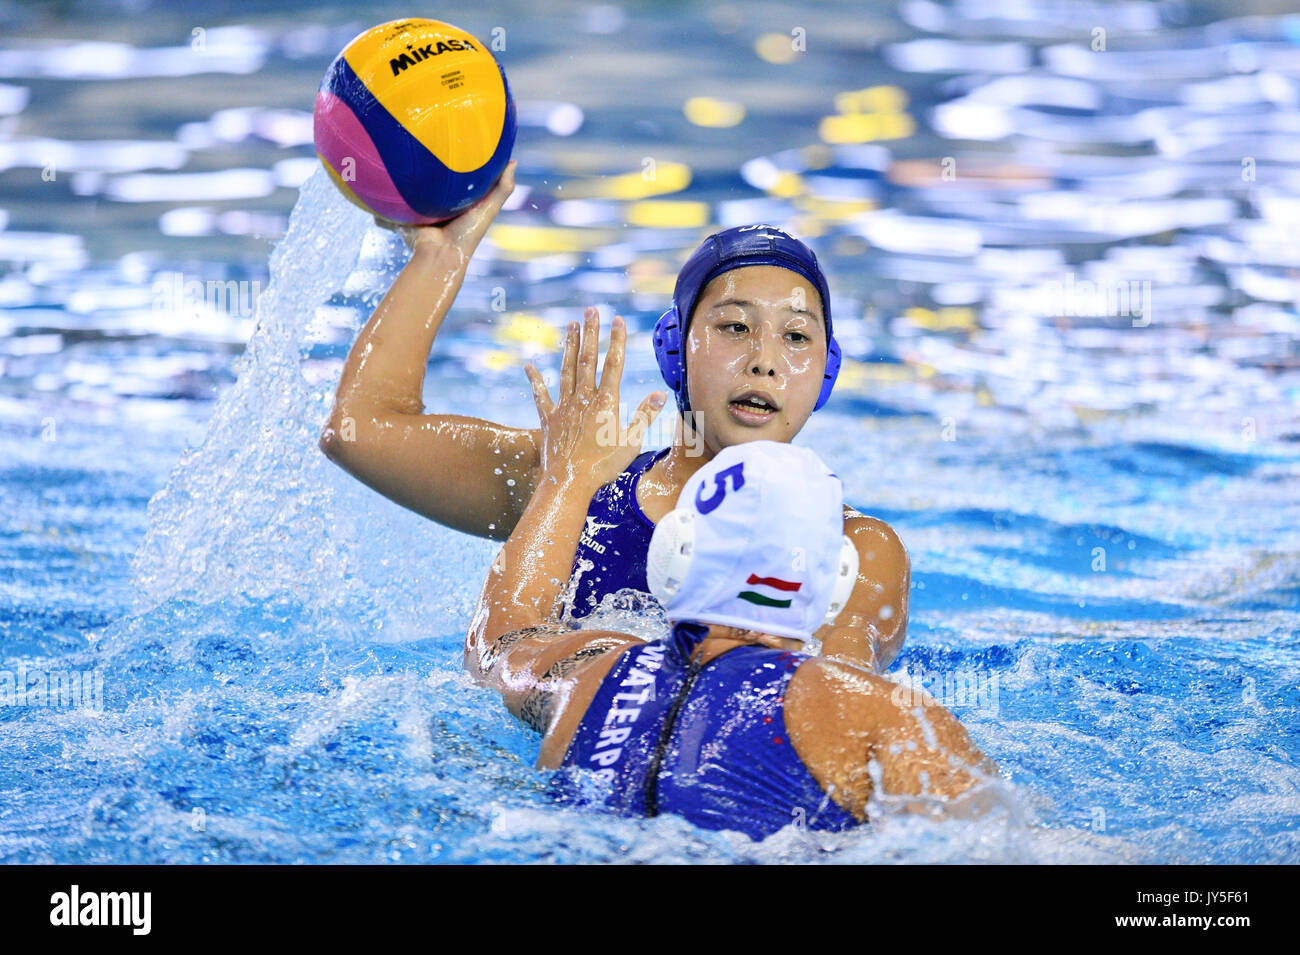 cb97ec2d4575a Womens Water Polo Stock Photos   Womens Water Polo Stock Images - Alamy